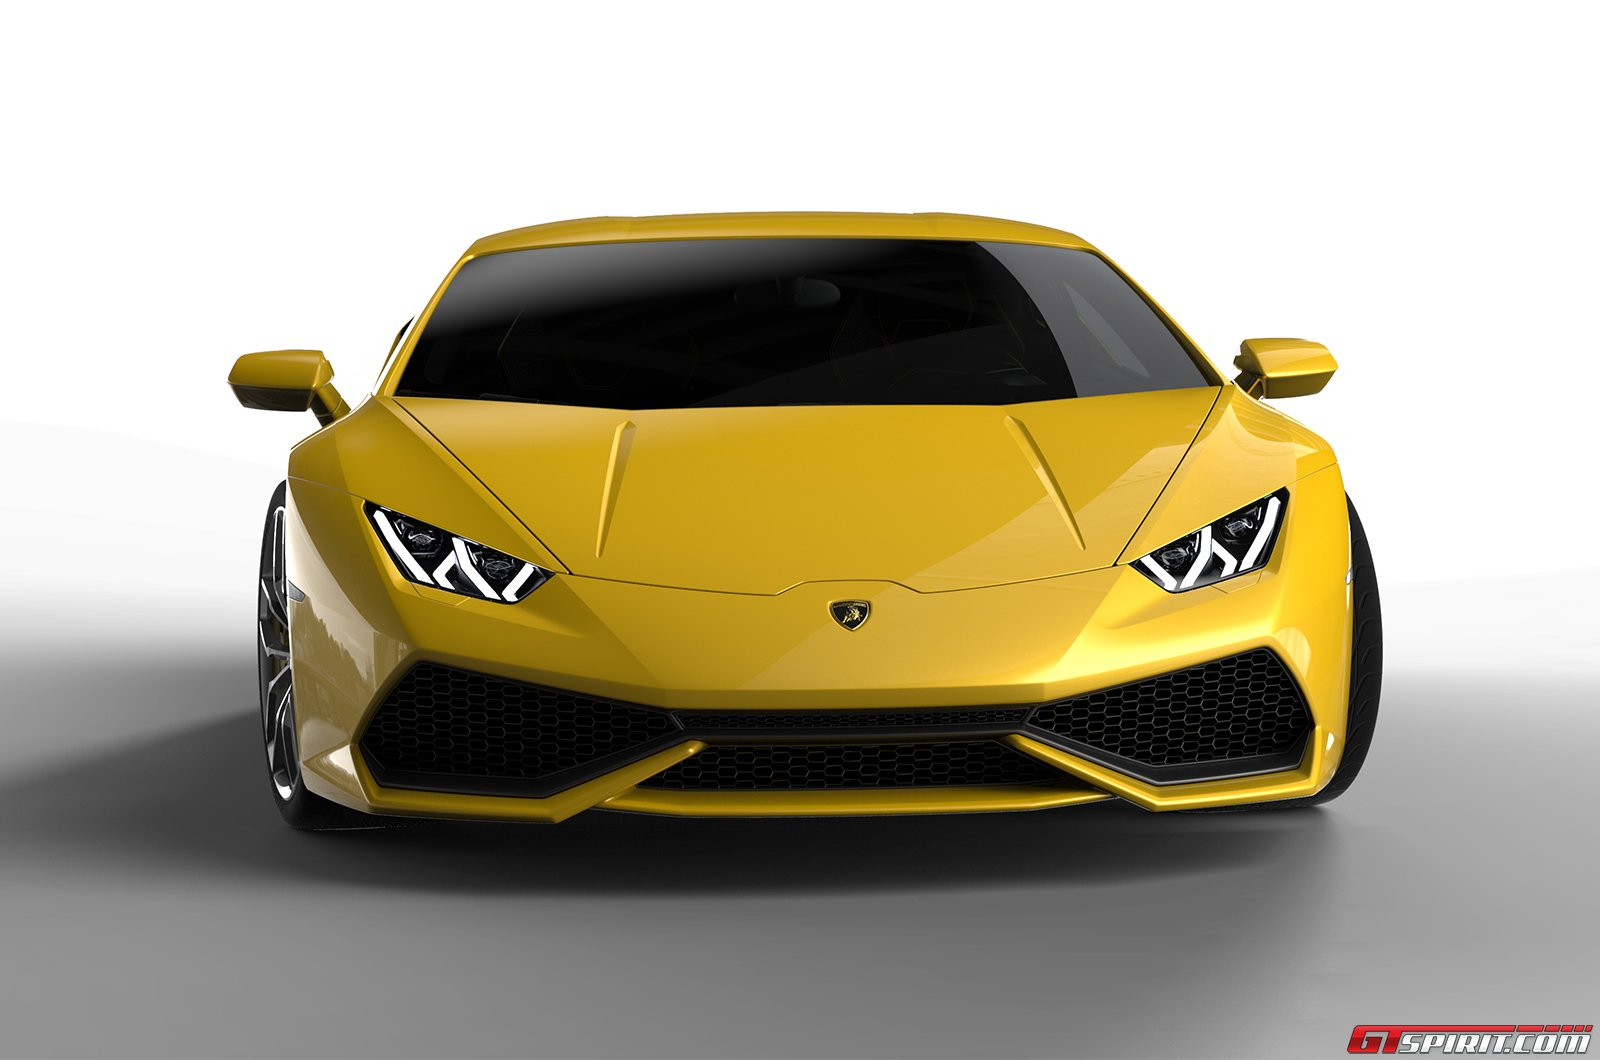 lamborghini huracan pricing details revealed - gtspirit